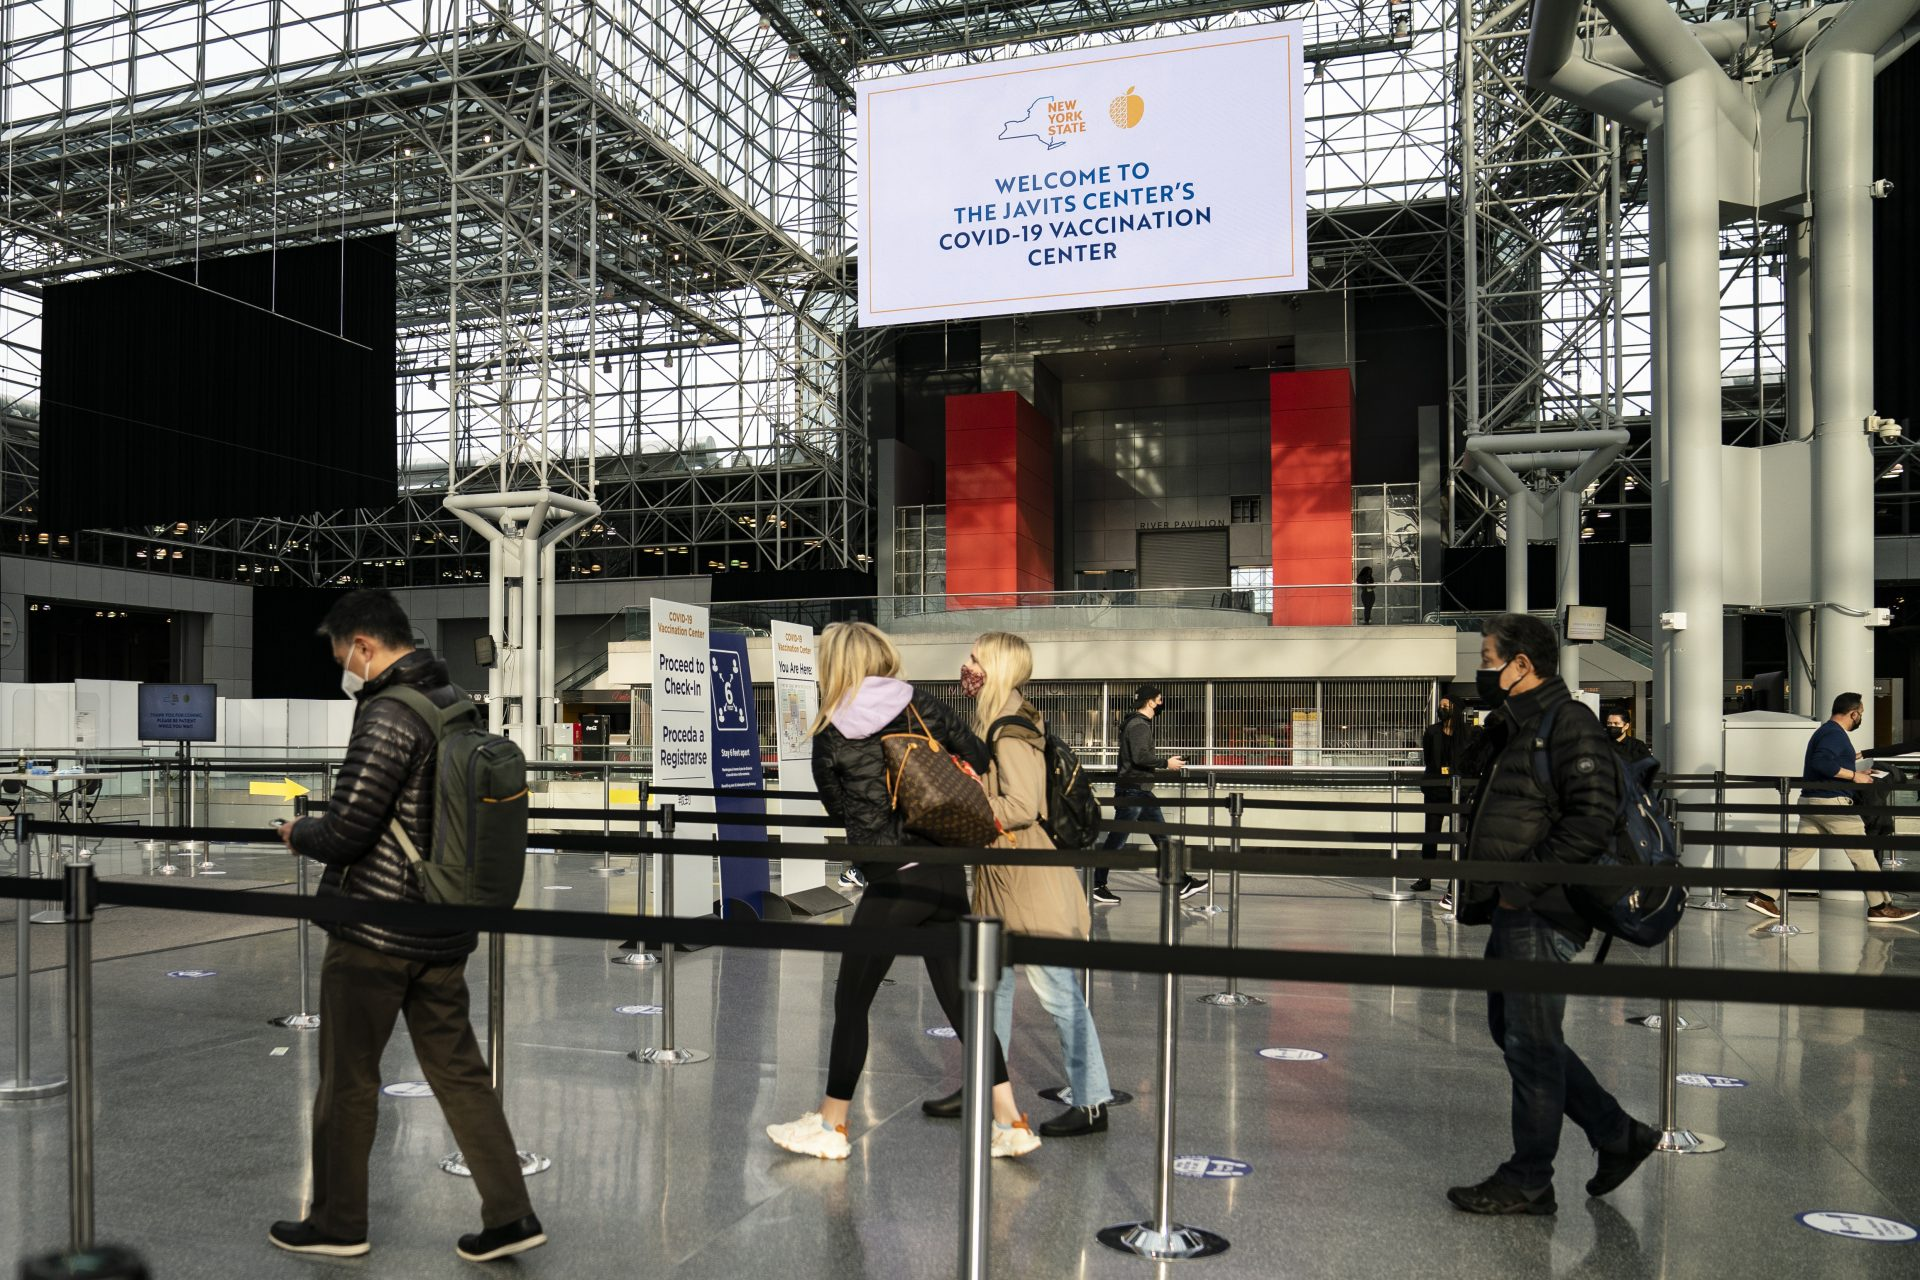 In this March 31, 2021, file photo, patients arrive for COVID-19 vaccination appointments at the Jacob K. Javits Convention Center in New York. Nearly half of new coronavirus infections nationwide are in just five states, including New York — a situation that puts pressure on the federal government to consider changing how it distributes vaccines by sending more doses to hot spots.